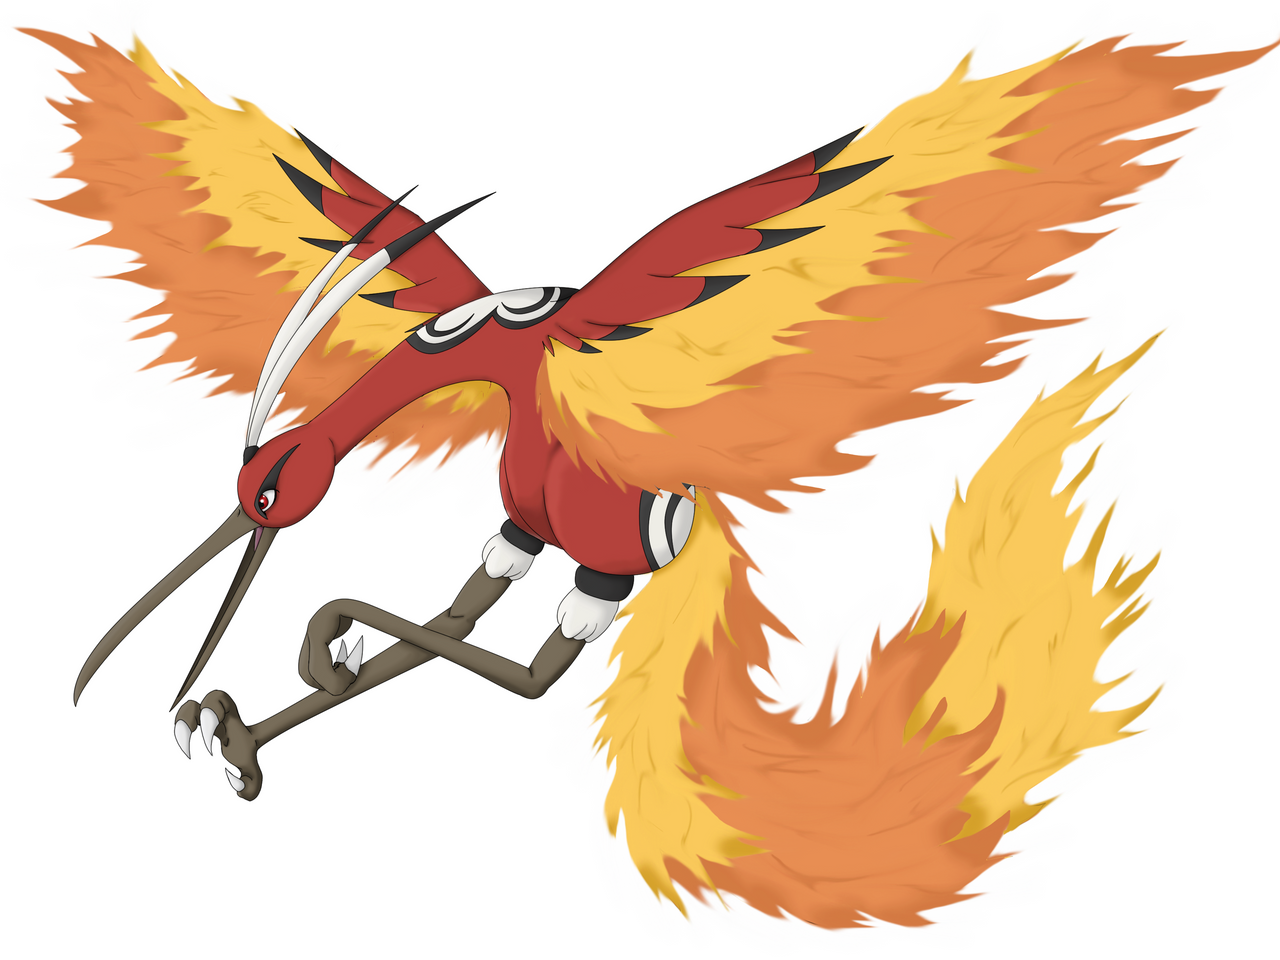 Evoultion of Moltres by Twime777 on DeviantArt